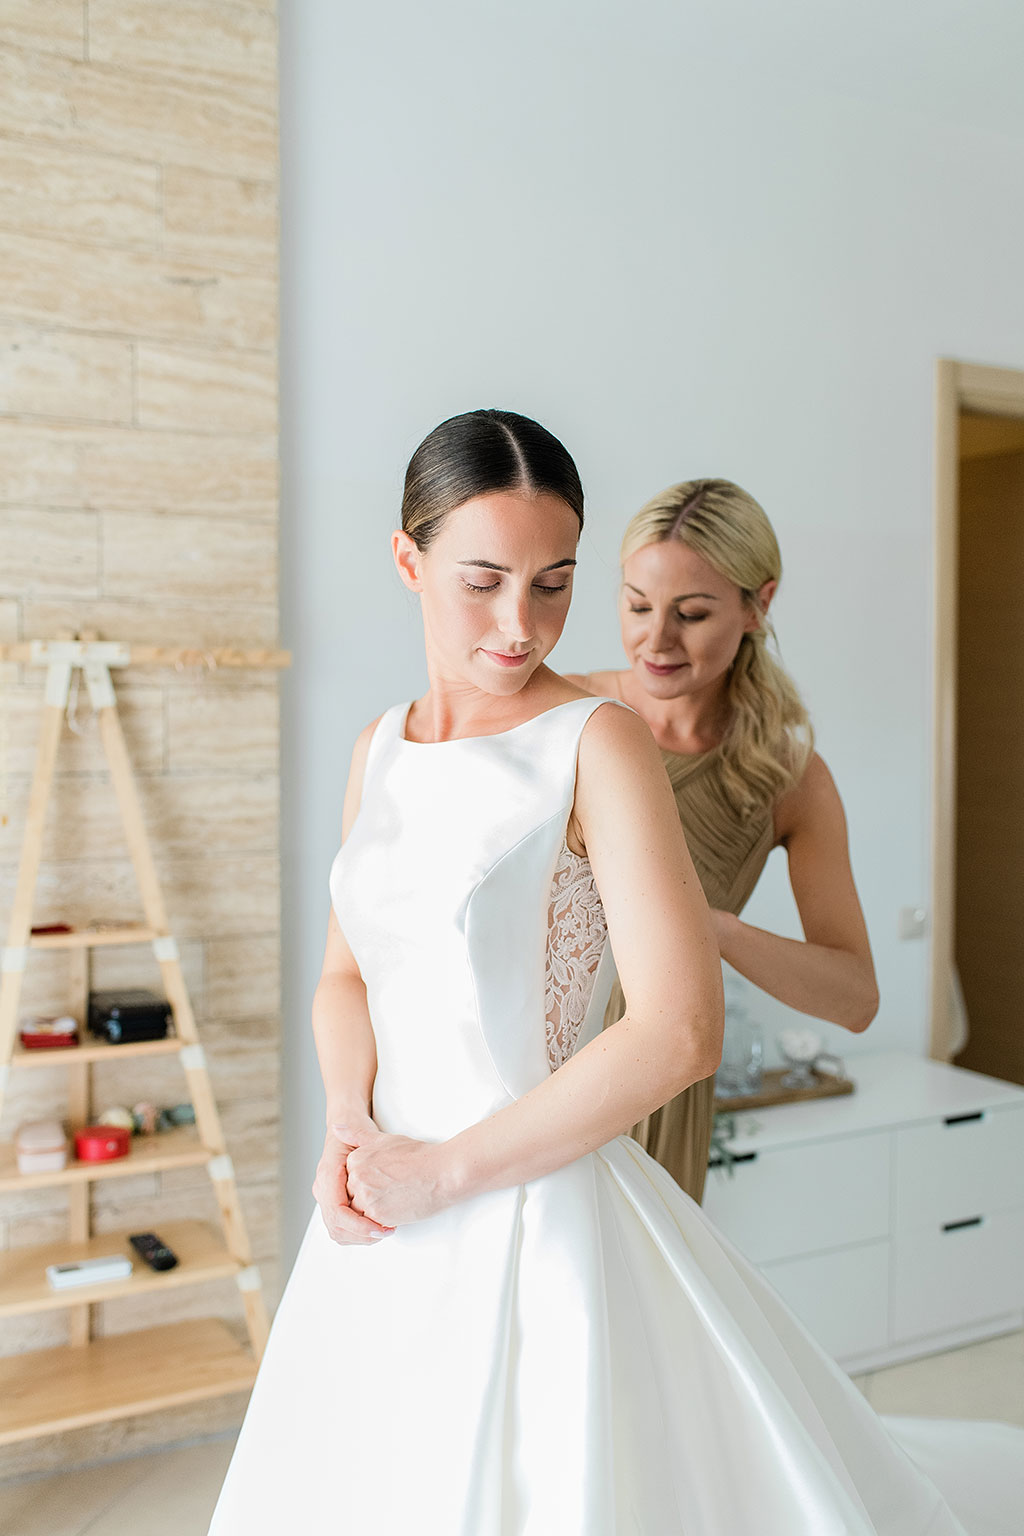 Gorgeous bride getting ready for an amazing destination wedding in athitos halkidiki